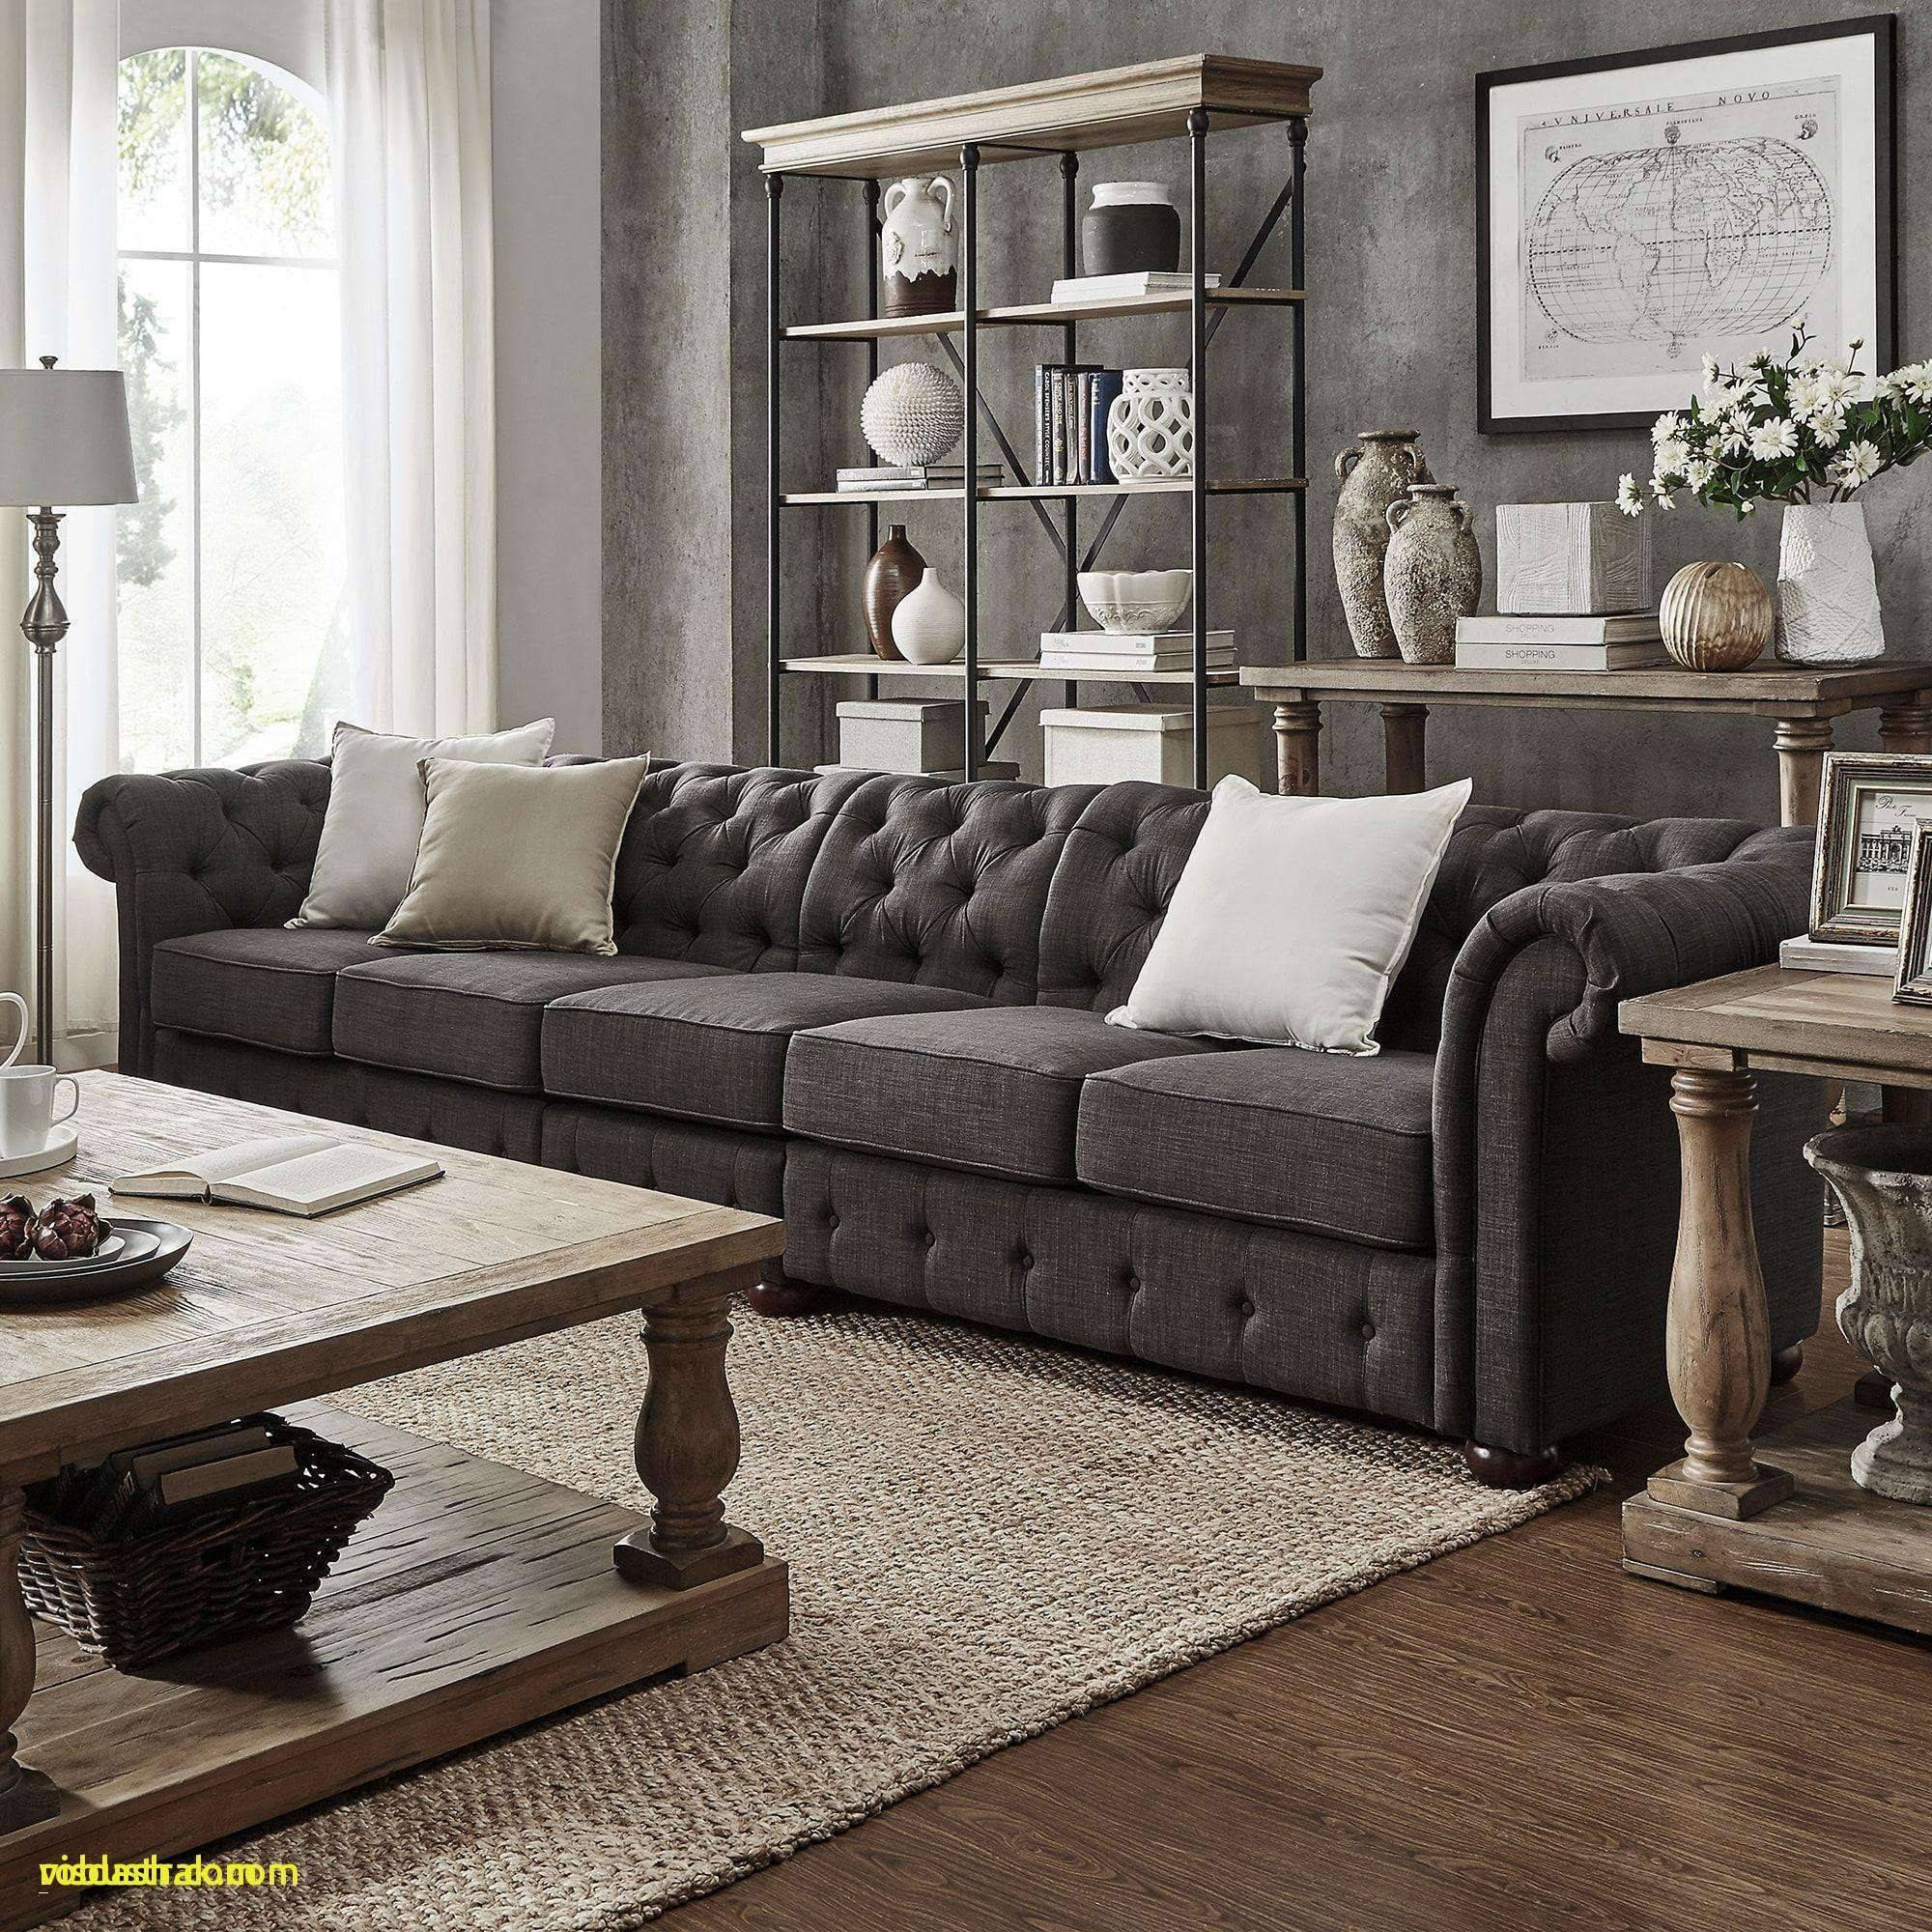 classic interior home design photos black sofas living room design fresh overstock couches 0d tags wonderful luxury overstock couches beautiful living room design classic home